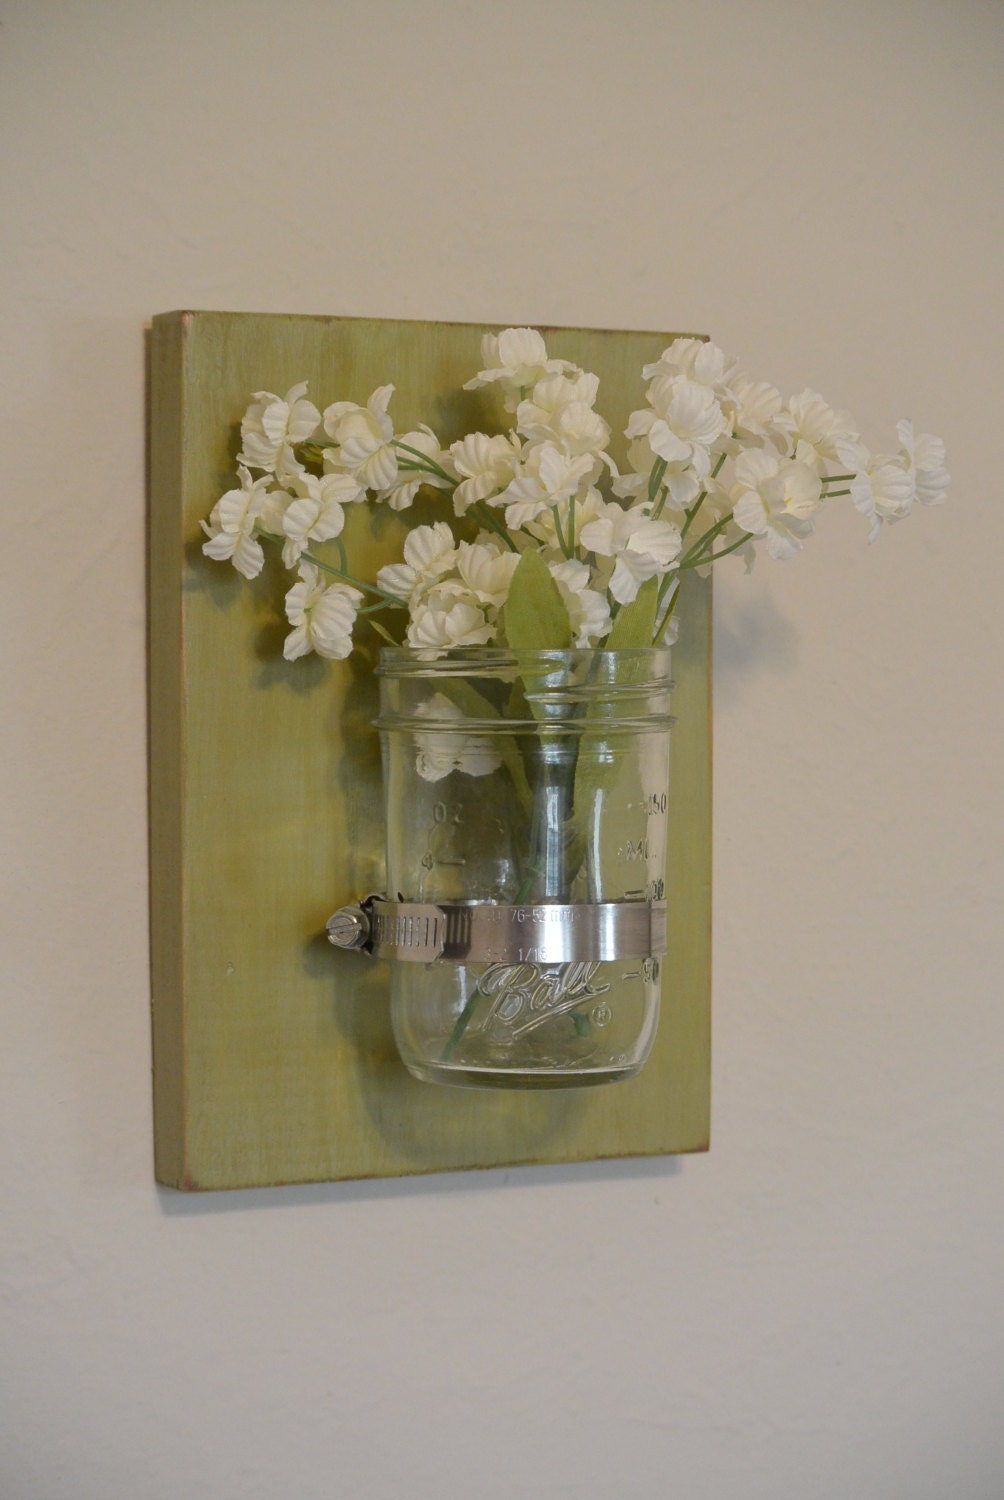 Wall Sconces Decor : Request a custom order and have something made just for you.